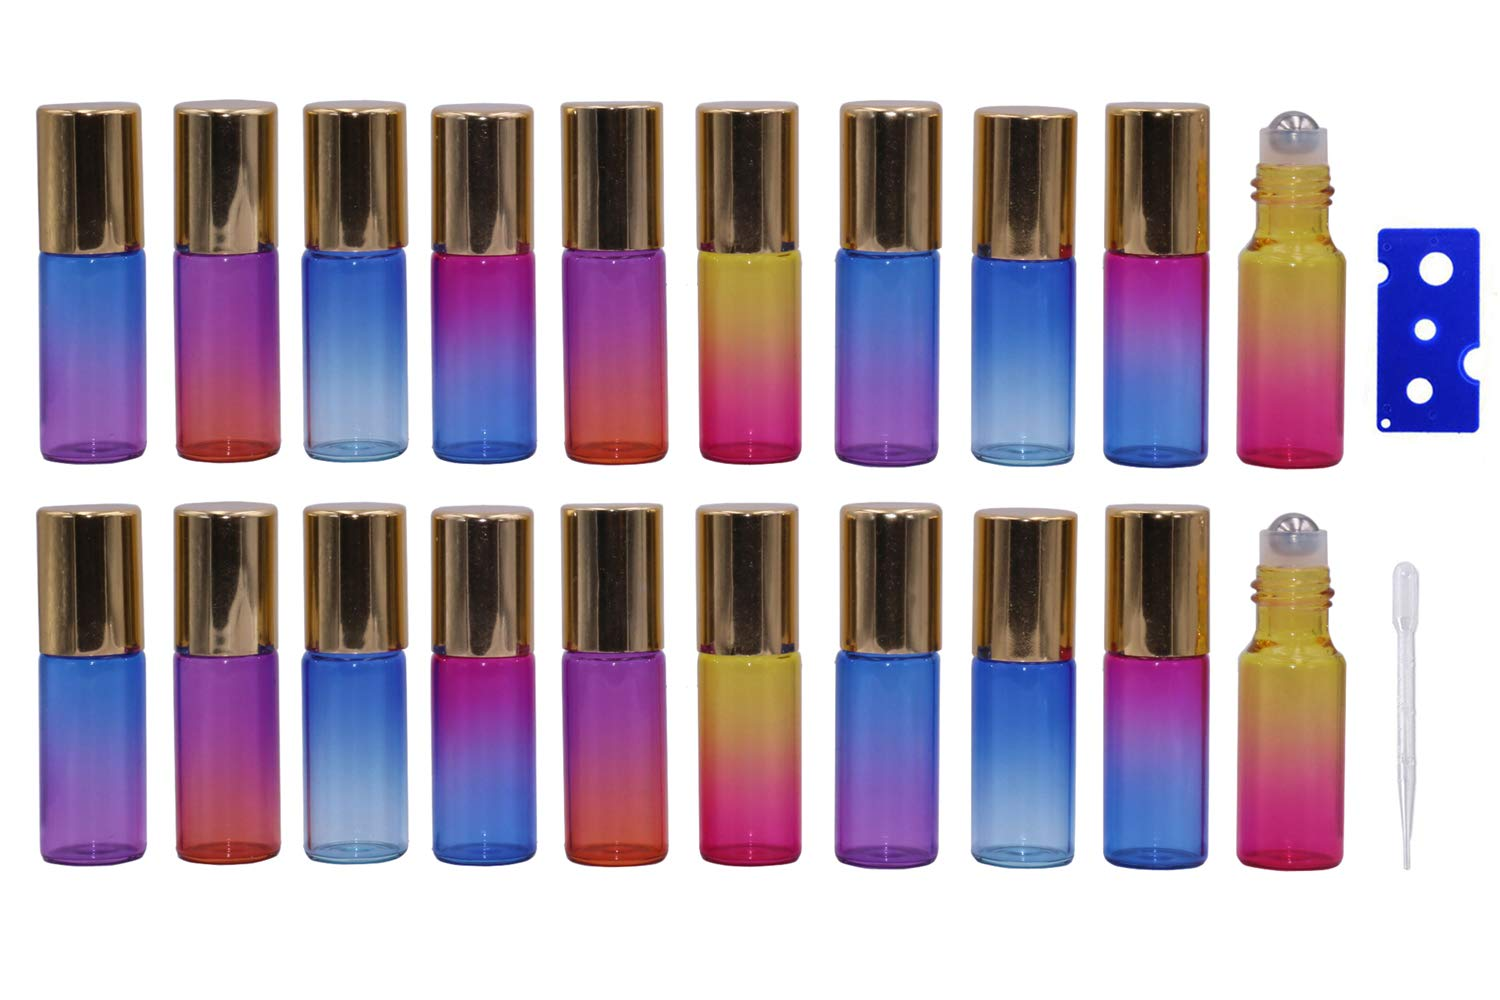 5ml Rainbow Gradient Color Glass Essential Oil Roller Bottles 20 Packs Empty Aromatherapy Perfume Rollerball Bottles Refillable Sample Roll On Bottles Vials with gold cap, Opener and Dropper Included Wilotick